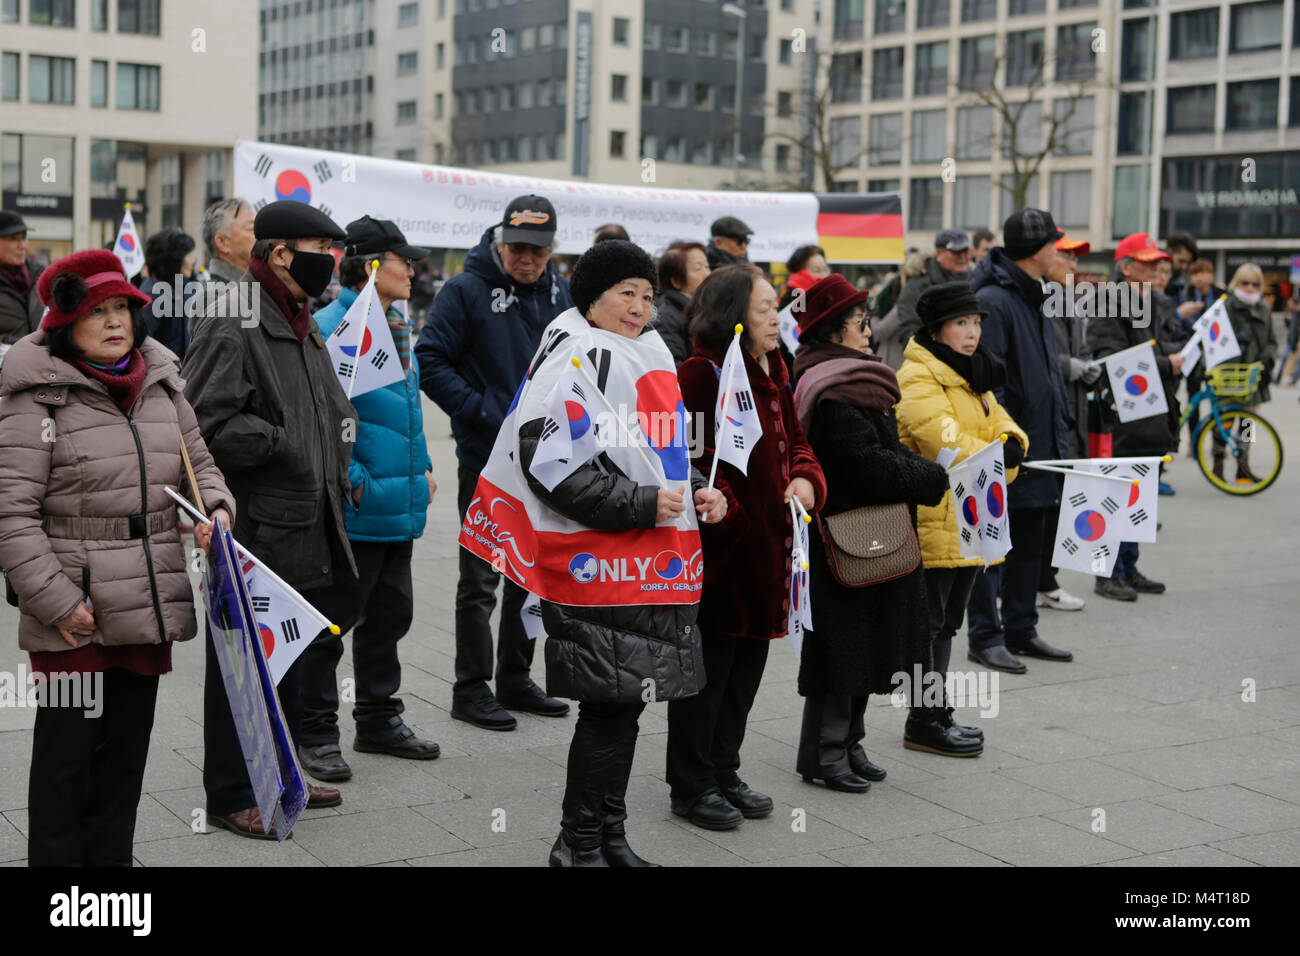 Frankfurt, Germany. 17th February 2018. People are pictured at the rally, holding South Korean flags. South Koreans Stock Photo